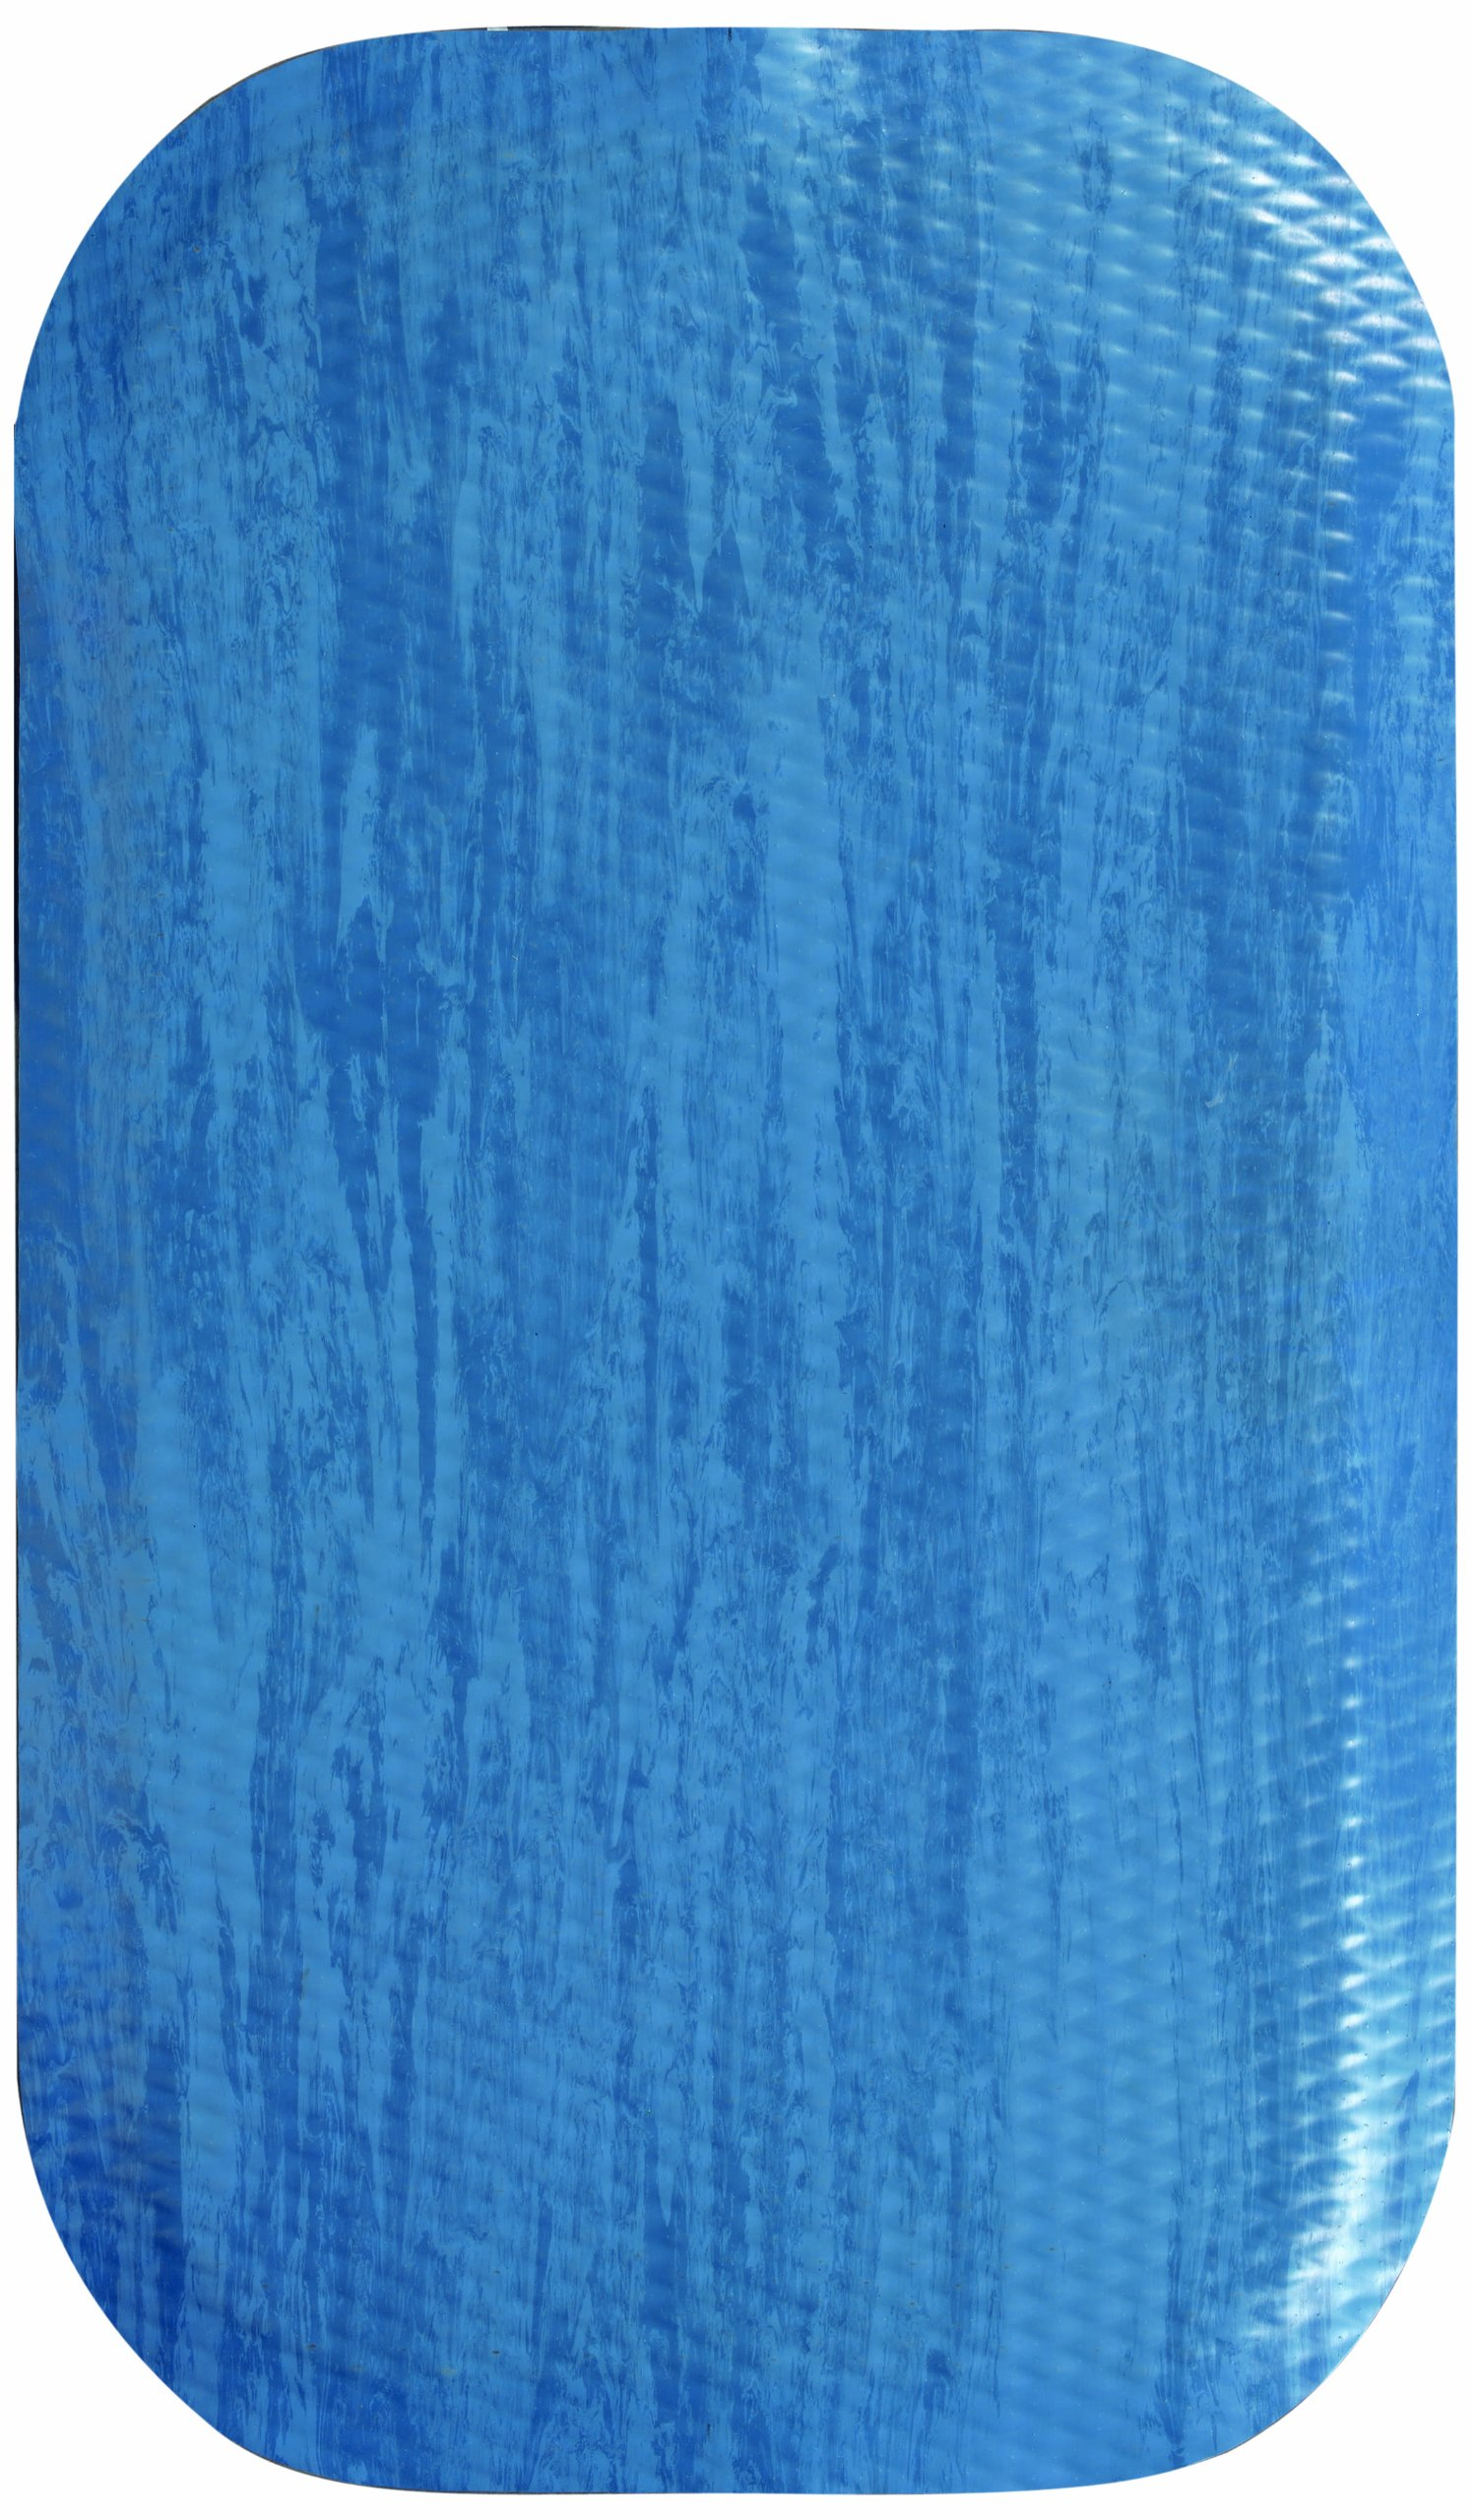 M+A Matting 449 Blue Merle Nitrile Rubber Hog Heaven Anti-Fatigue Mat, Marble Top, 3' Length x 2' Width x 7/8'' Thick, For Indoor